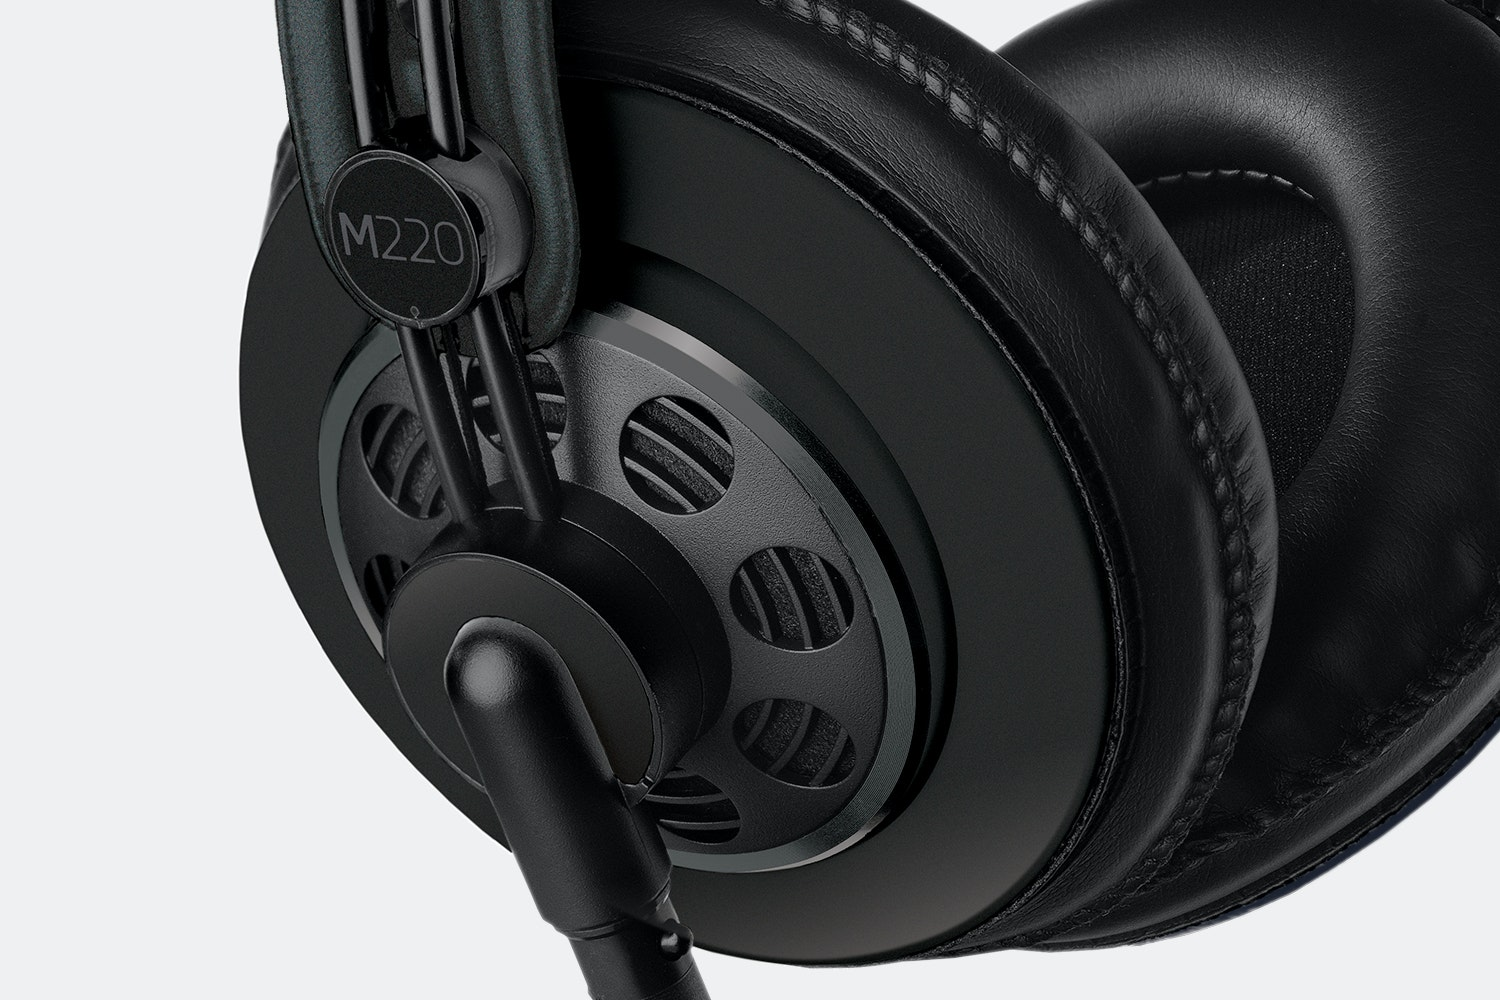 Massdrop x AKG M220 Pro Headphones – Black